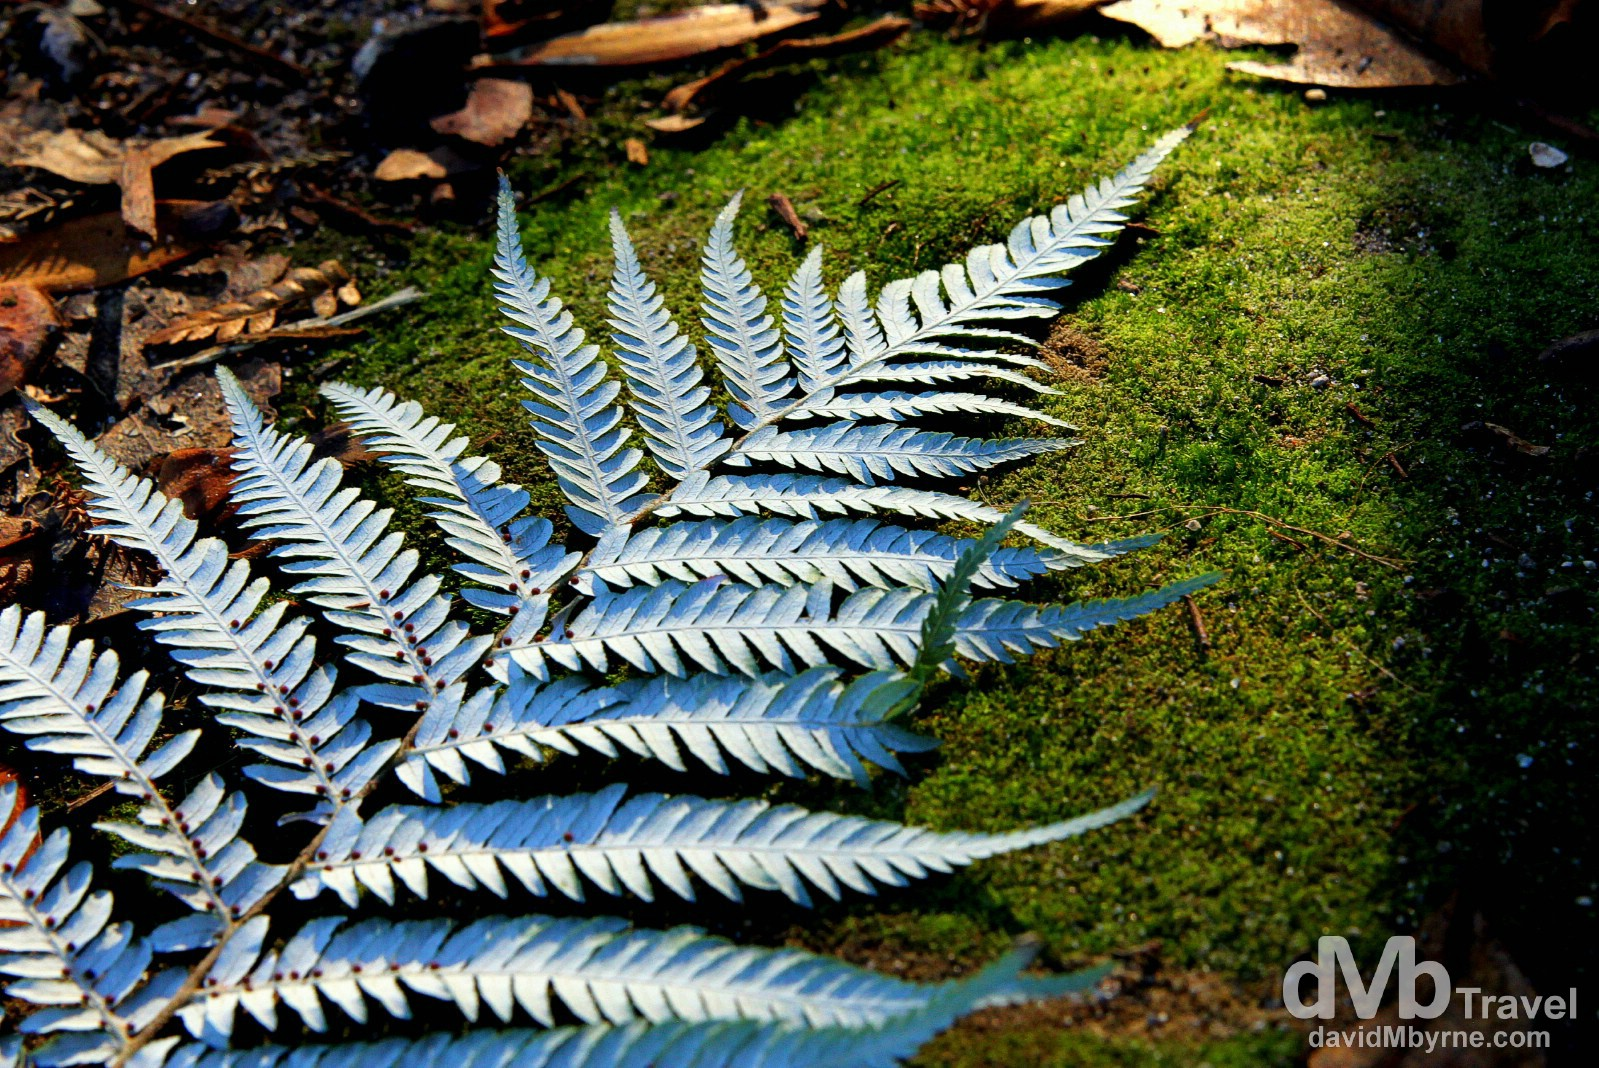 A silver fern rests on the mossy floor in a wooded section of the Hell's Gate geothermal reserve, Rotorua, North Island, New Zealand. May 5th 2012.